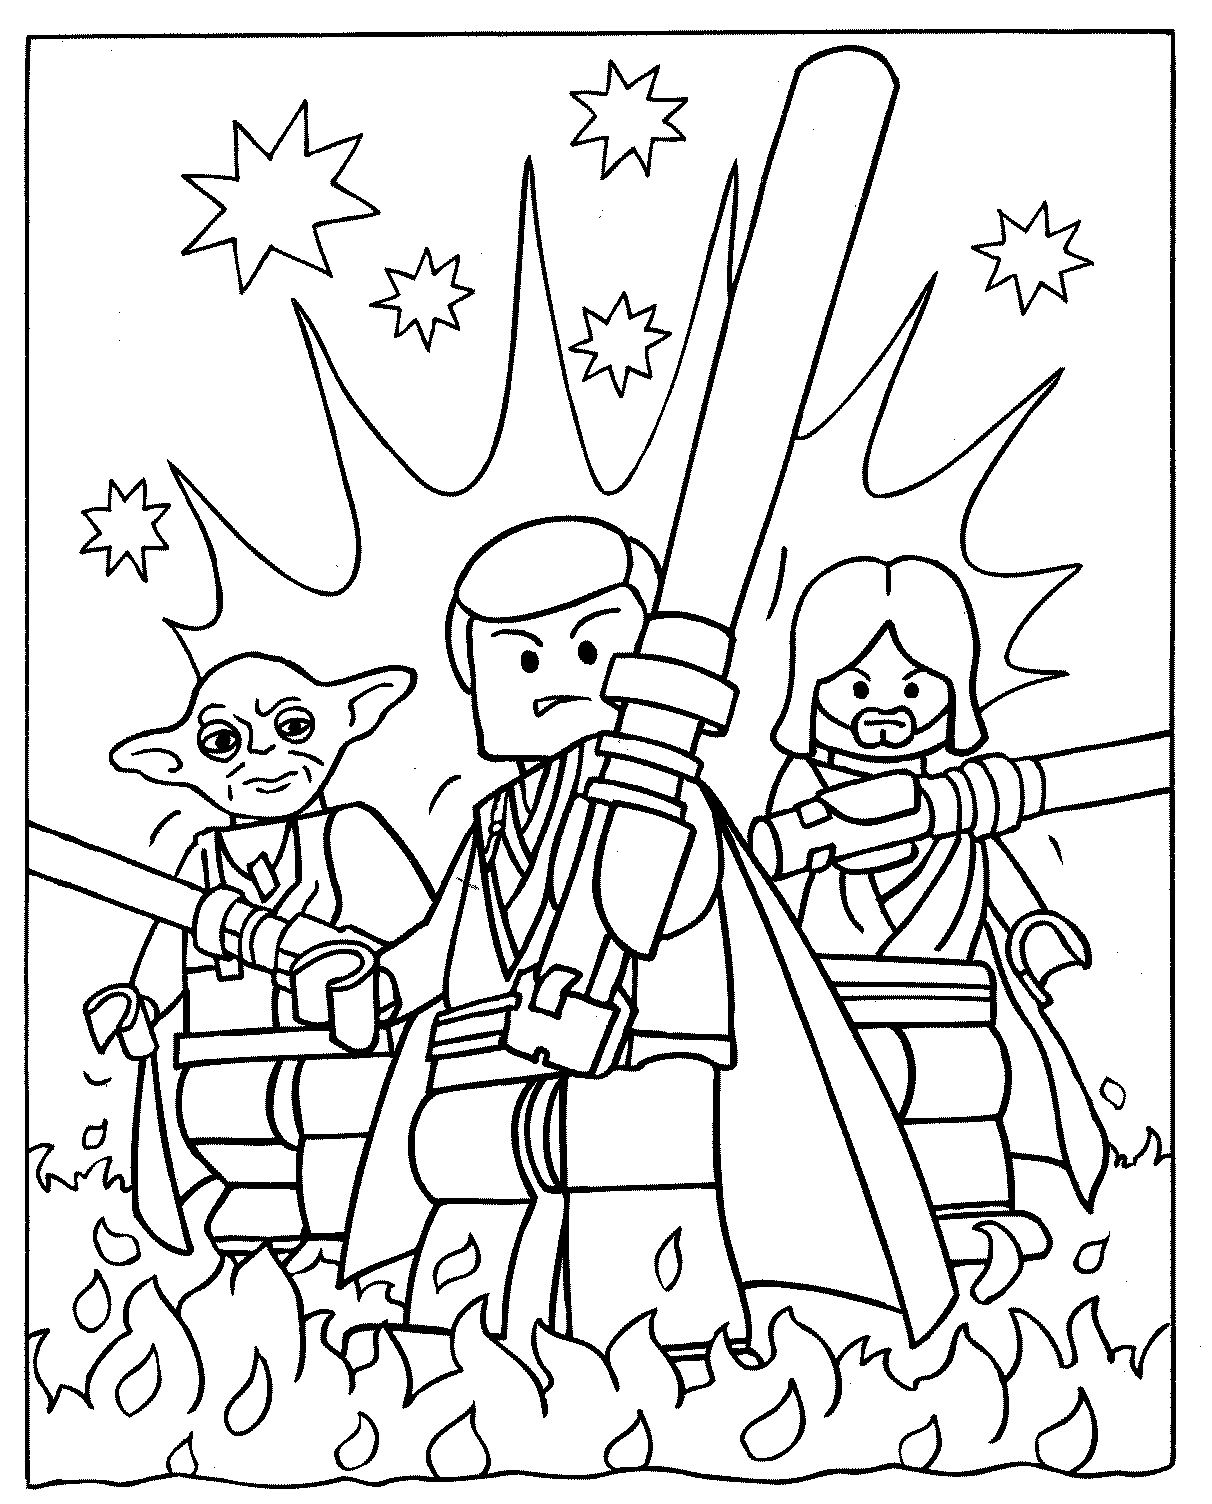 Lego starwars coloriage legos coloriages pour enfants - Coloriage spiderman 1 ...